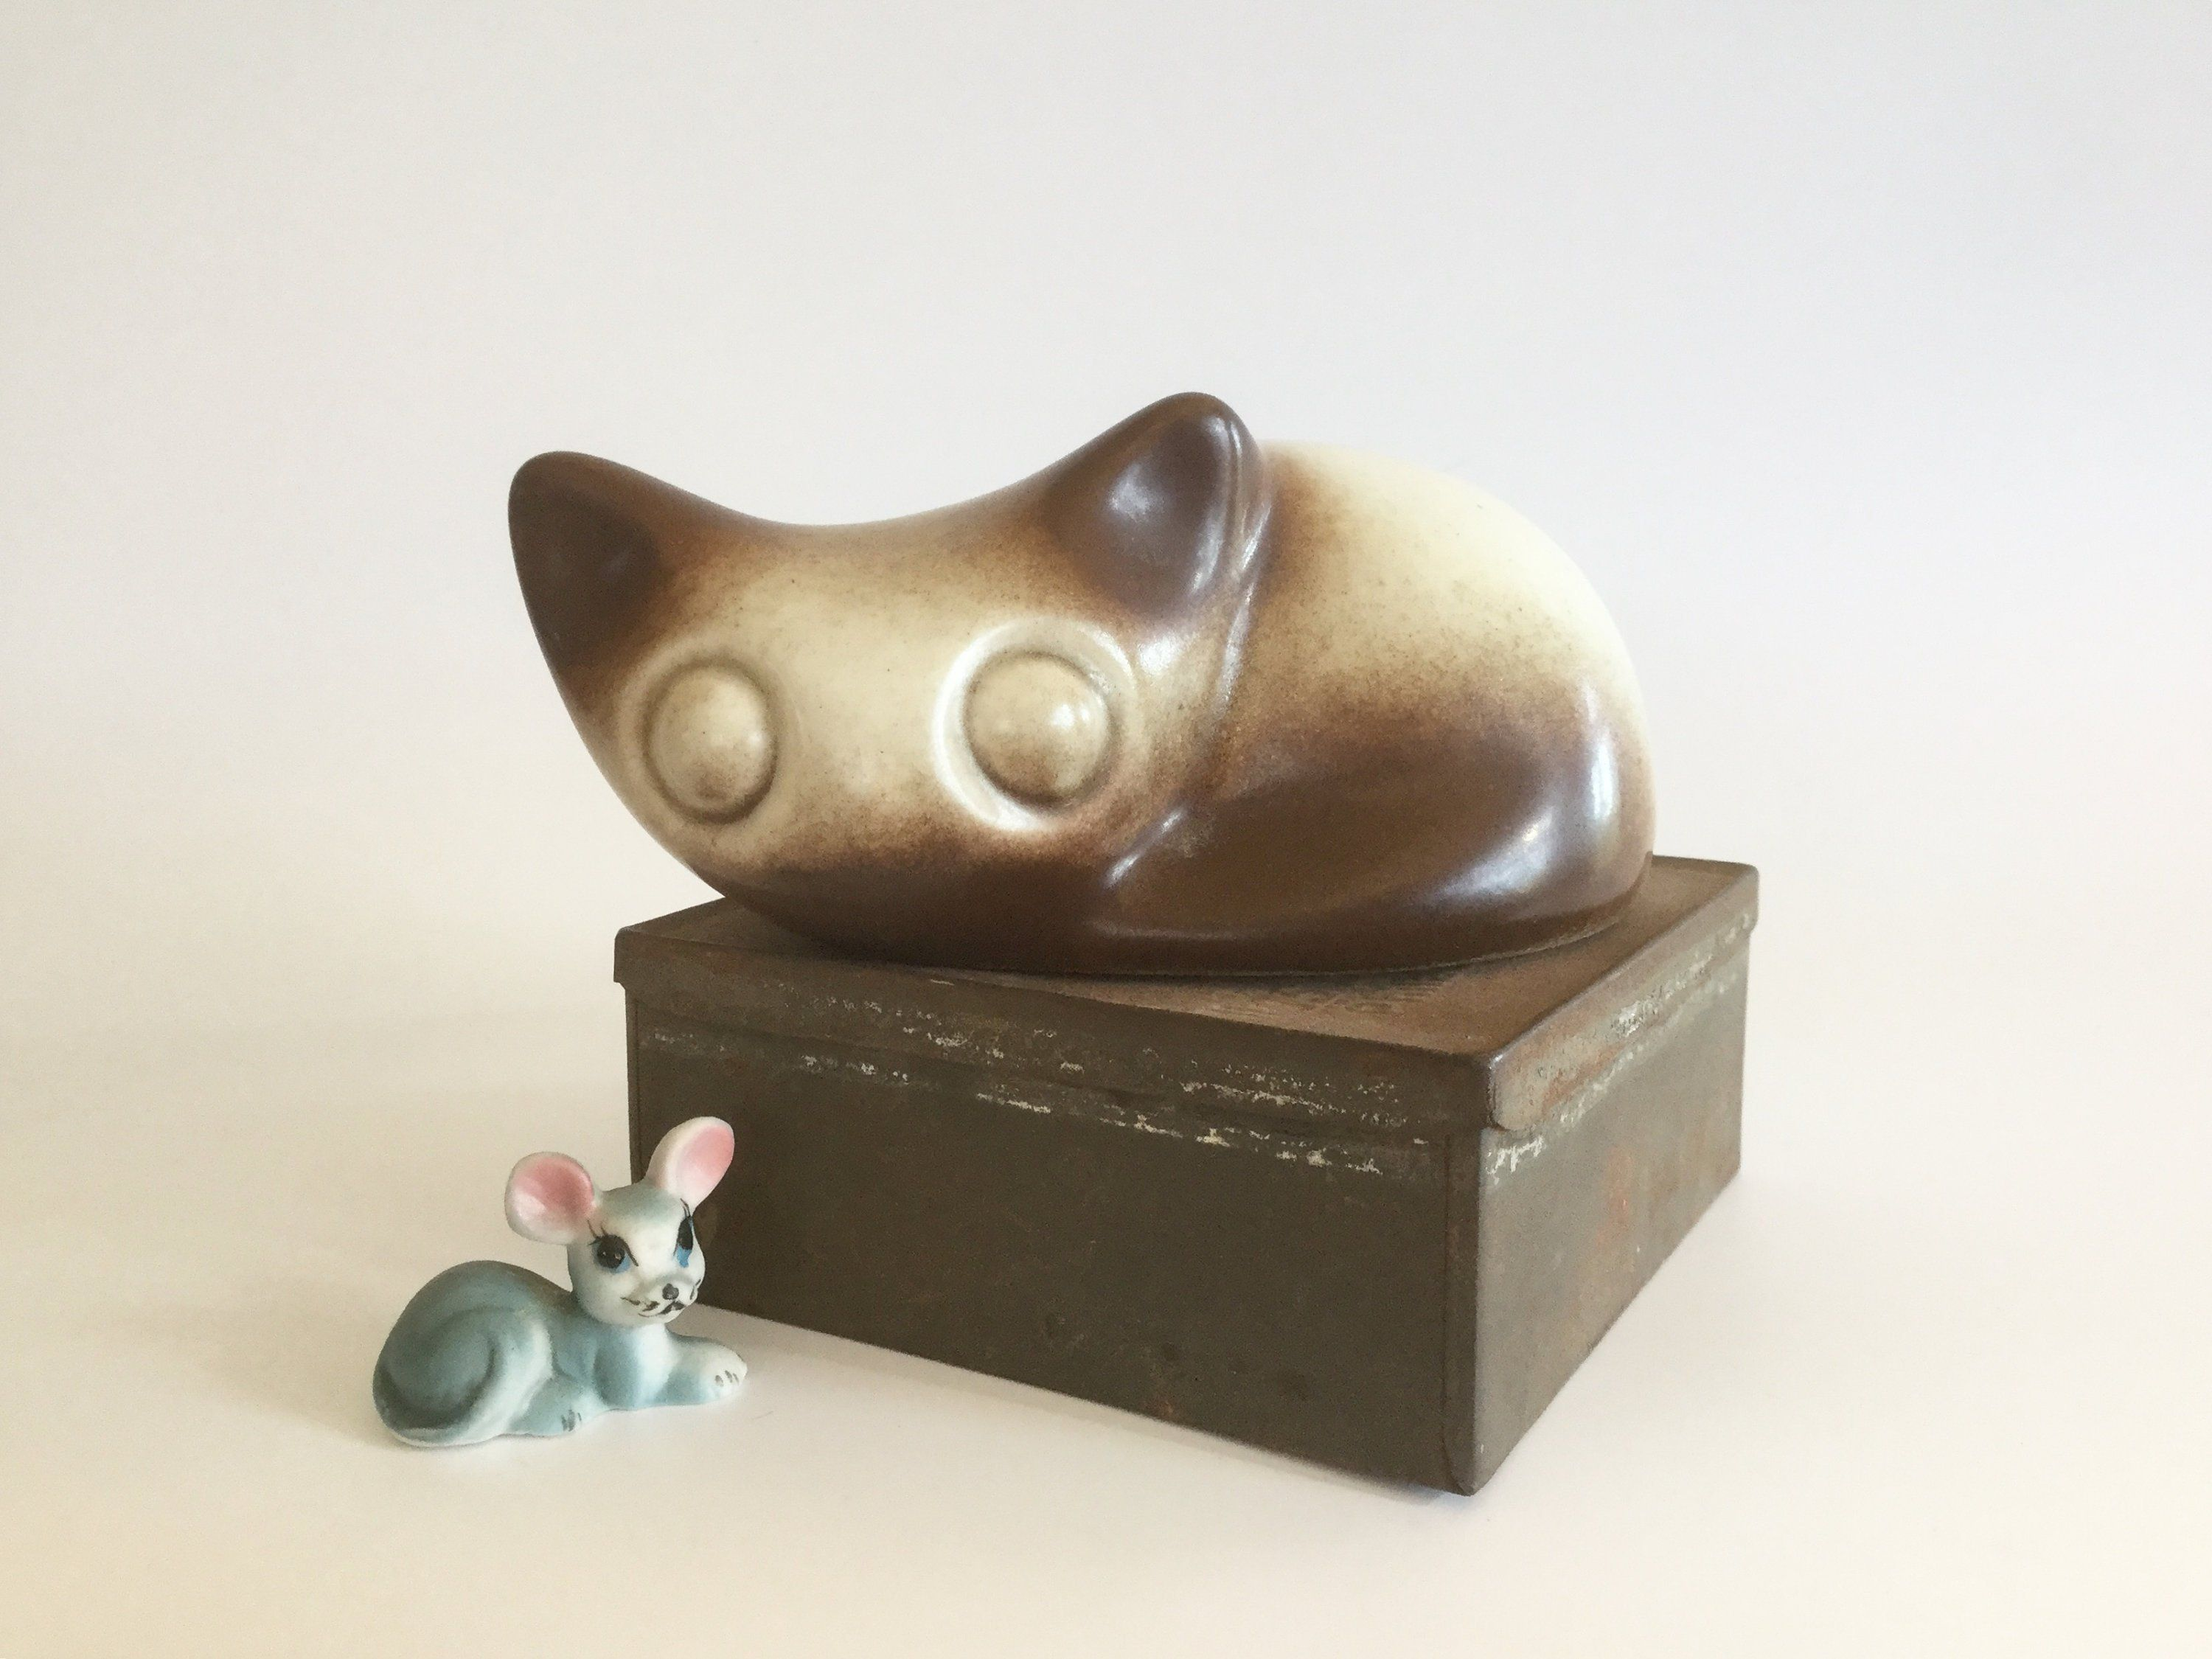 Howard Pierce Pottery Kitten Ceramic Cat Vintage Ceramics Midcentury Pottery Siamese Cat Abstract Vi Vintage Cat Figurines Vintage House Vintage Ceramic